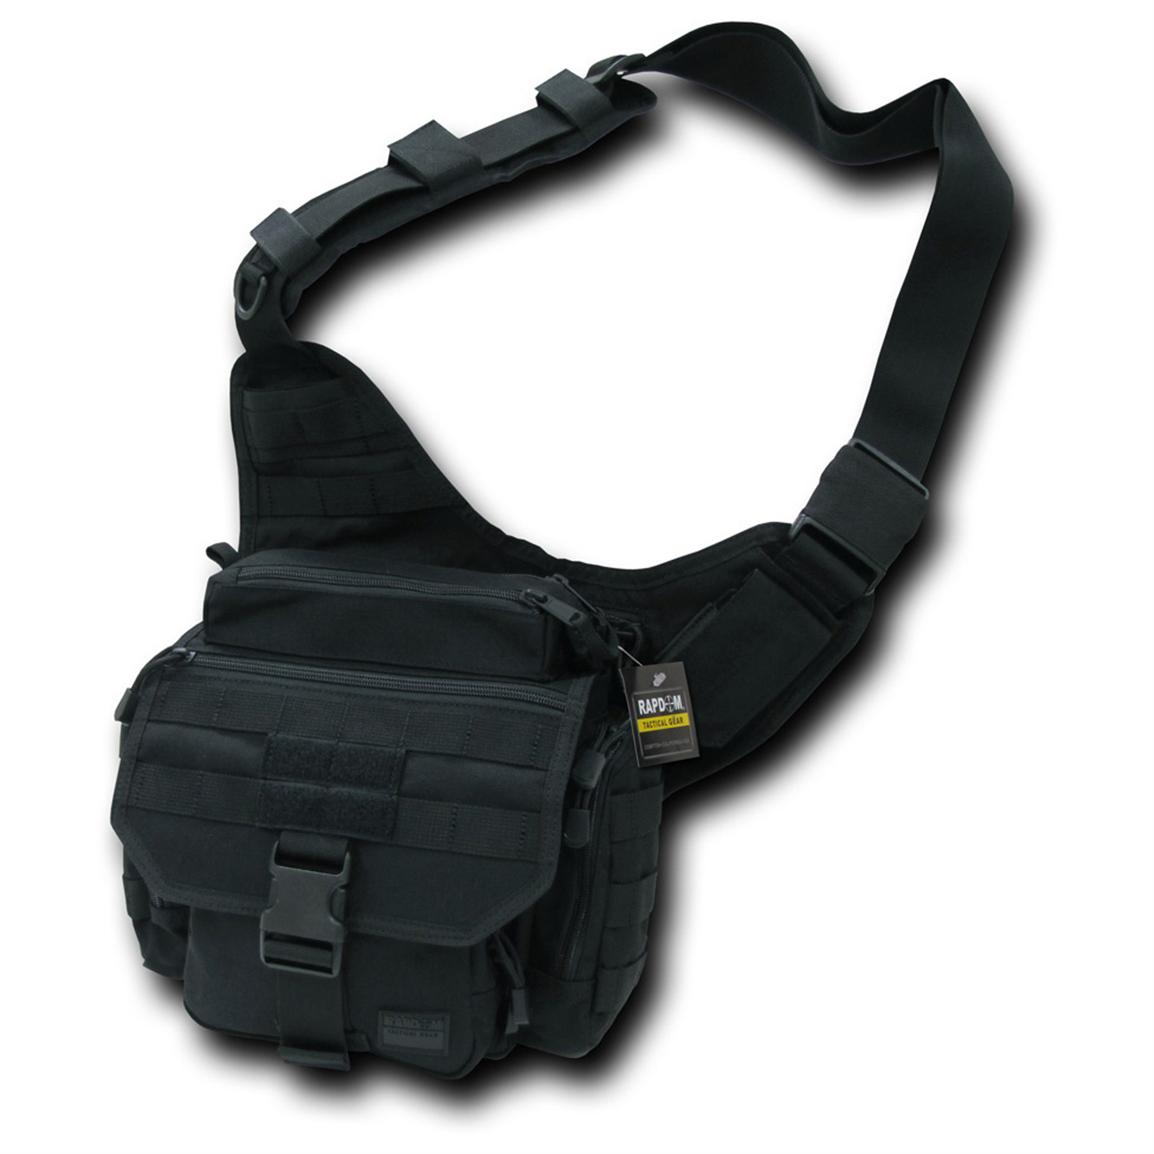 Rapid Dominance Tactical Field Bag, Black